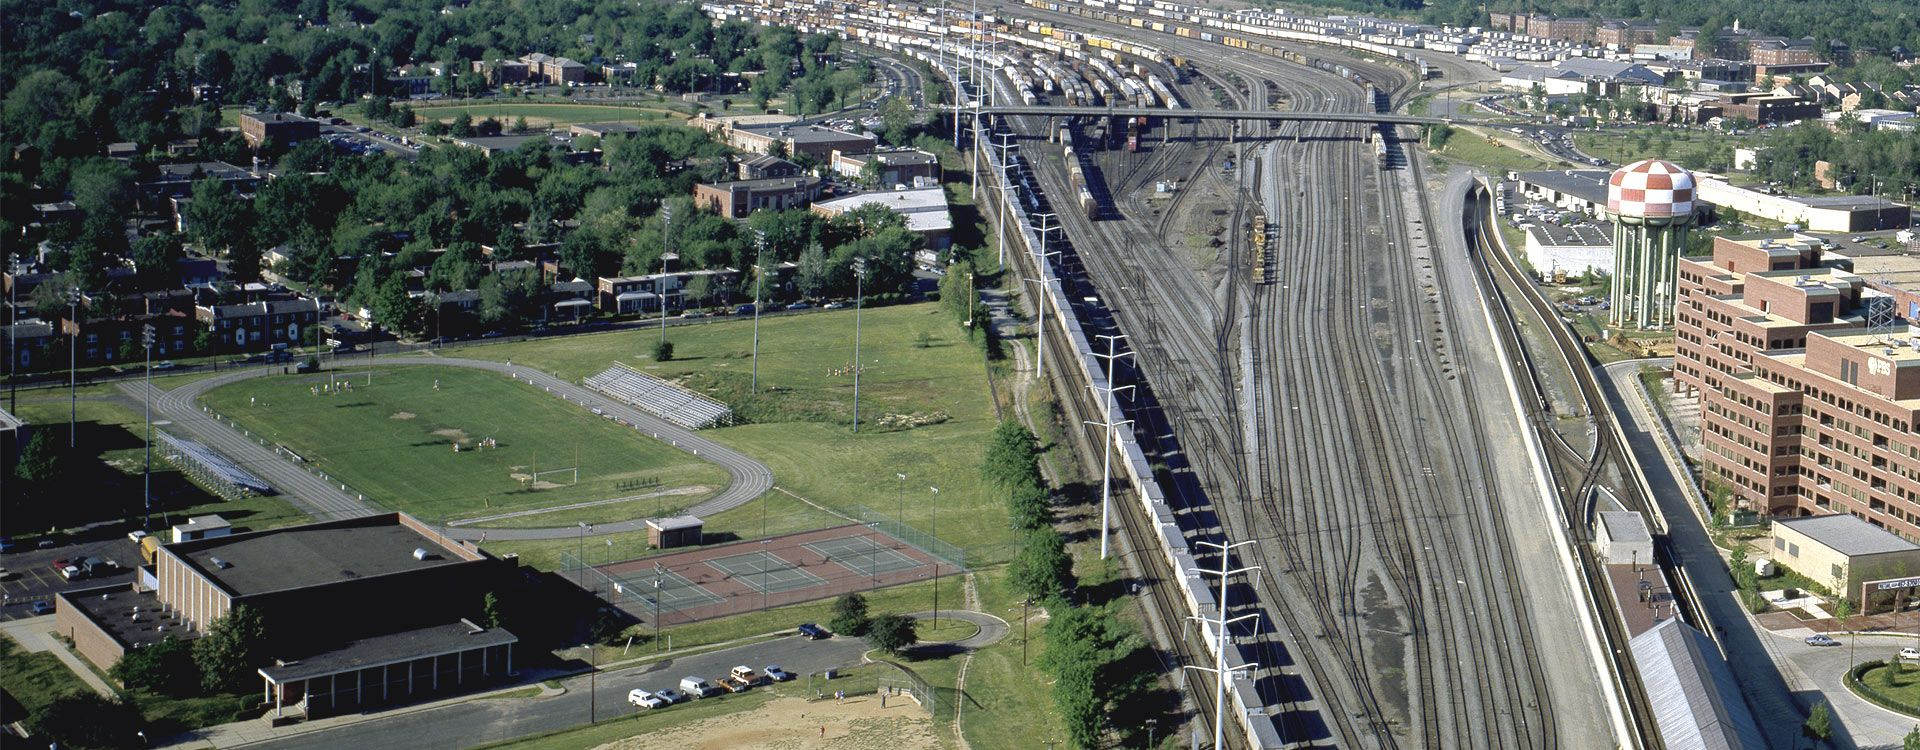 bnr-Potomac-Yard-Metrorail-Station_Strategic_Consulting-EN-US